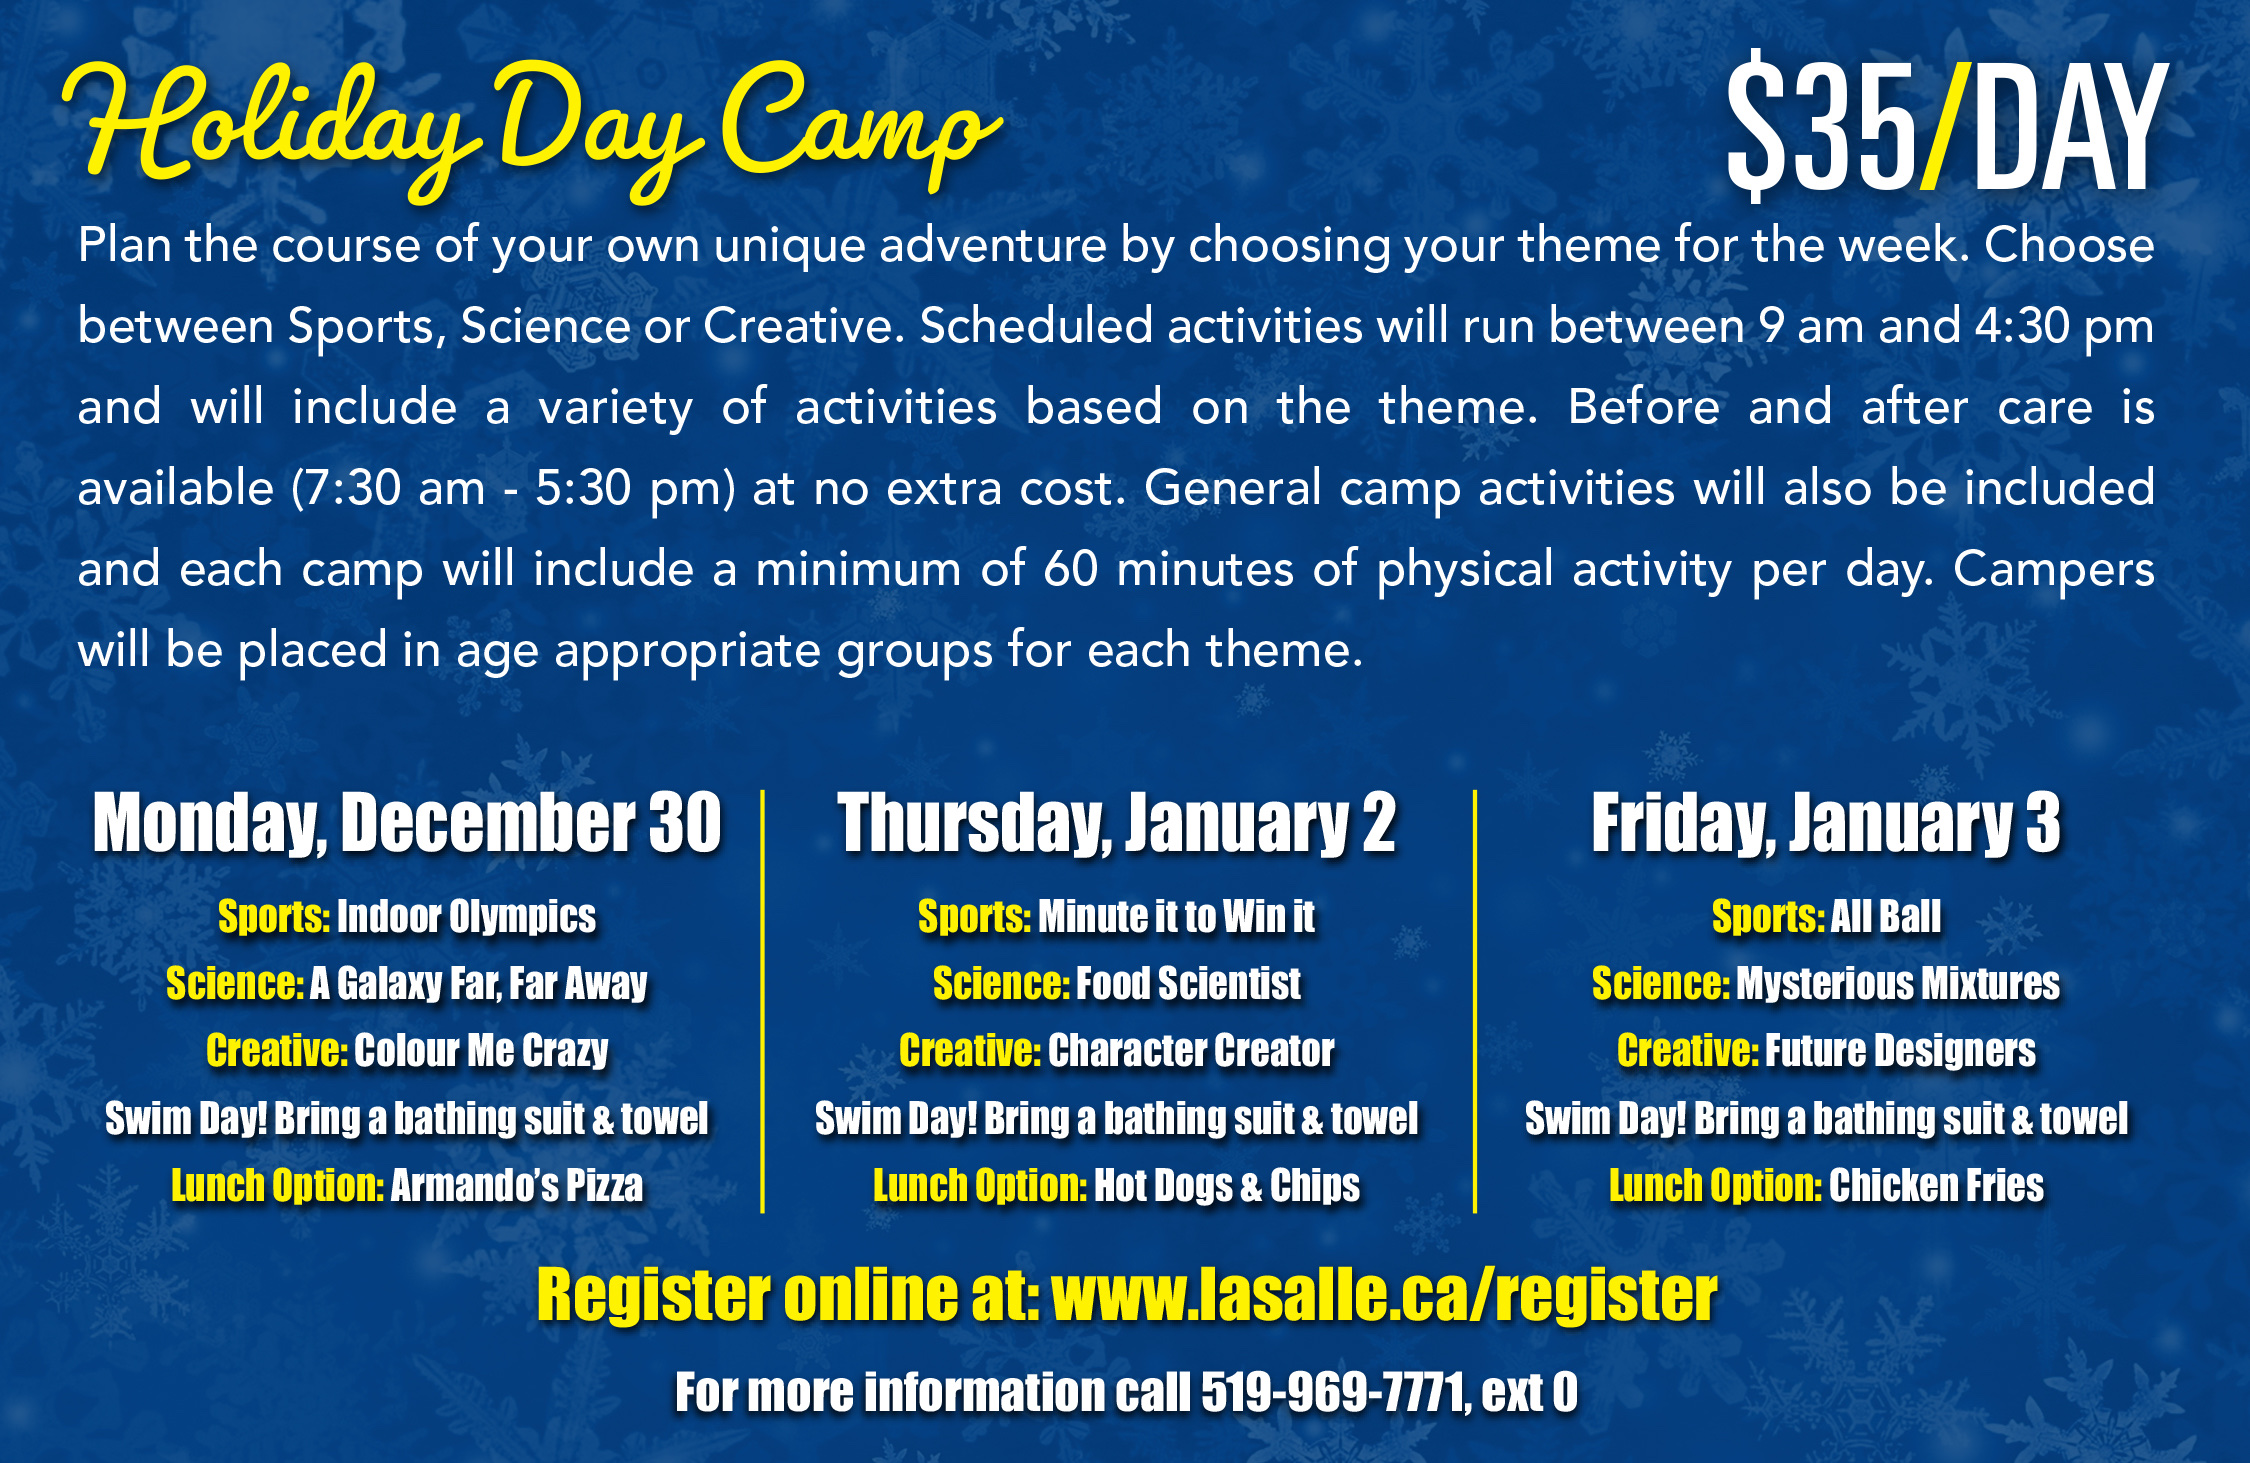 Holiday Camp in LaSalle